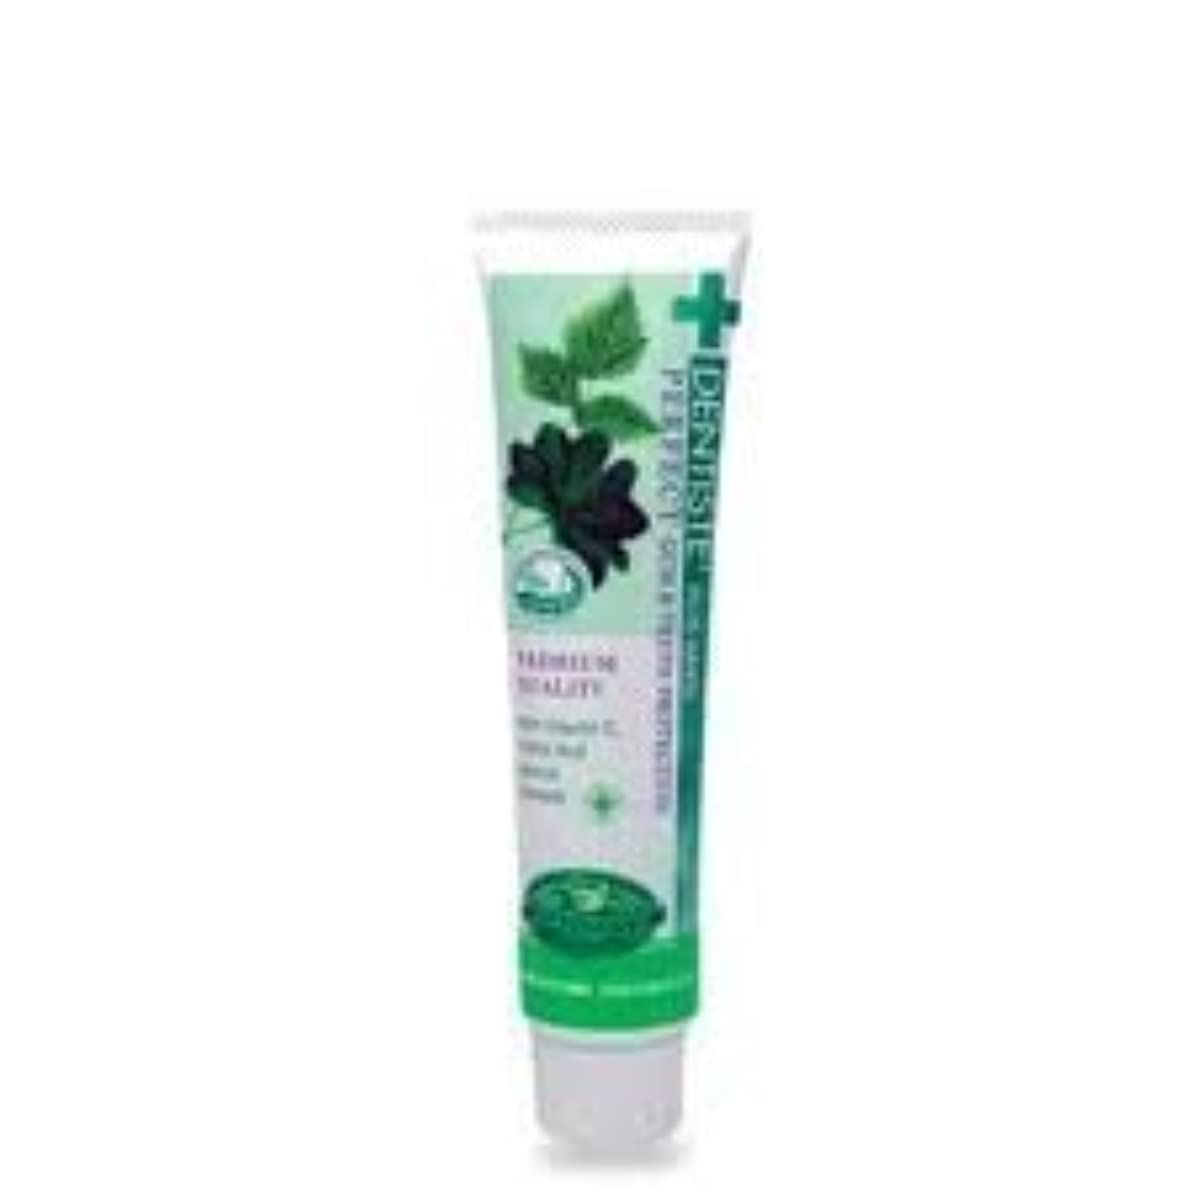 懲らしめ横たわる混乱させるDentiste Night Time Active Whitening Toothpaste 100 G Thailand Product by Dentiste